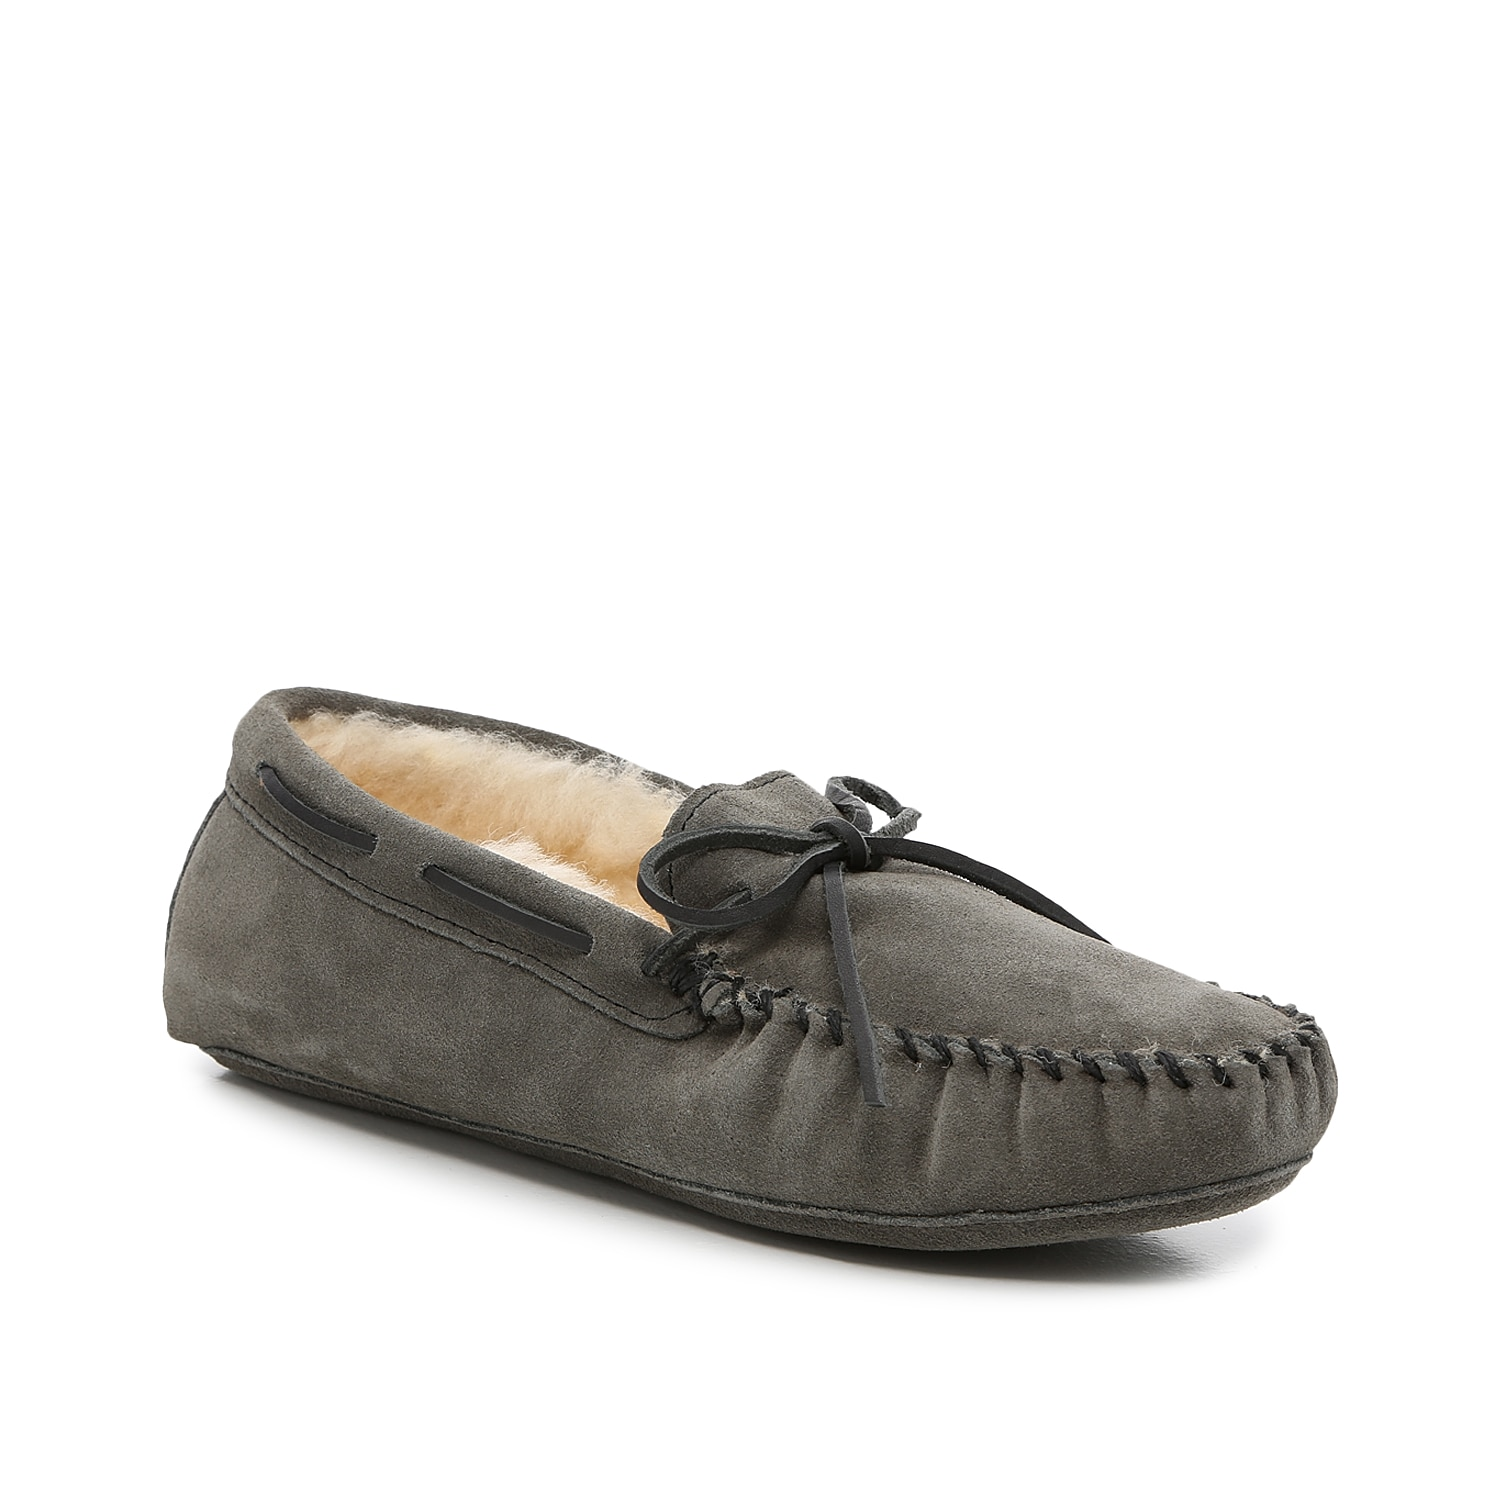 Take your cozy style to the next level with the Sheepskin Softsole moccasin slipper from Minnetonka. This pair features a soft shearling lining to keep toes toasty.